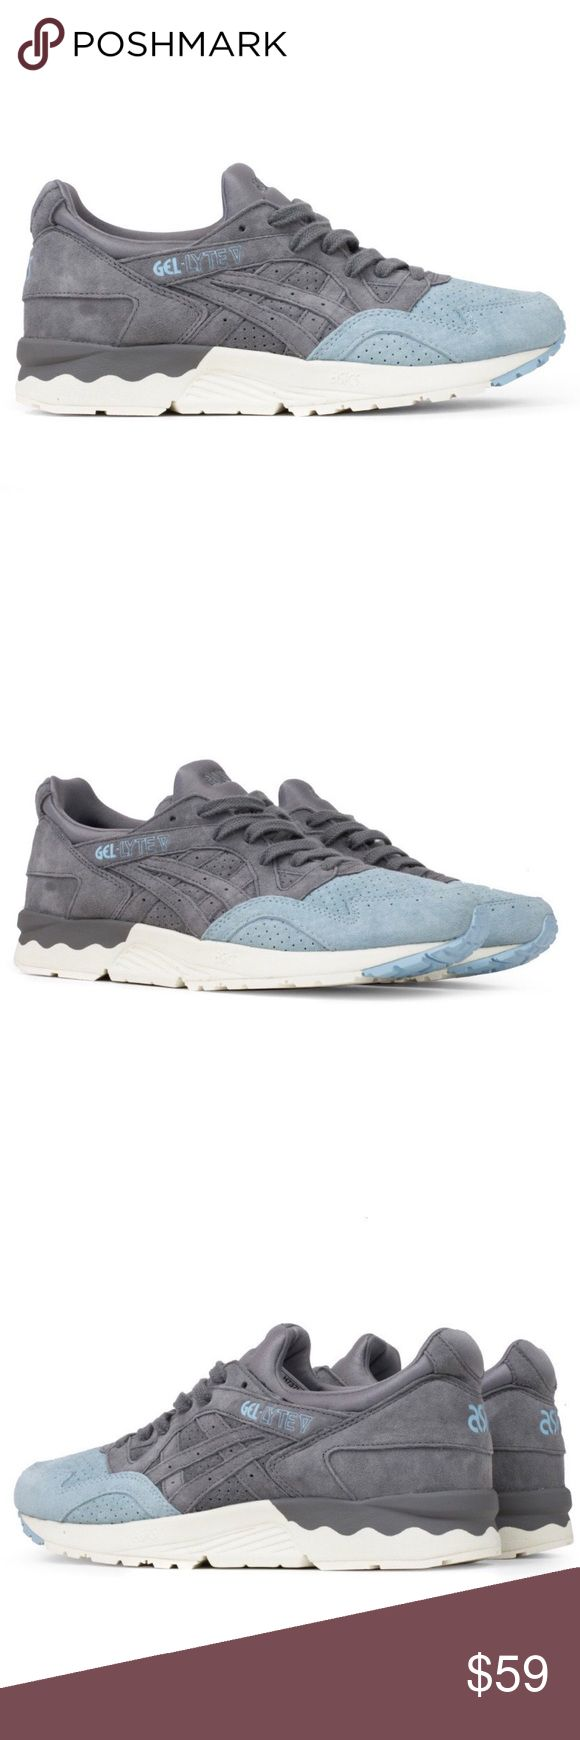 Asics Tiger Mens Size 11 Shoes GEL-Lyte Sneakers Asics Tiger Mens Sneaker  Color: Aluminum  Size: 11 US Men  Details:  - Round Toe  - Perforated vamp  - Colorblock suede construction  - Padded fabric tongue and collar - Lace-up vamp closure - Padded removable insole - Gel cushioned midsole - Grip sole - Imported - Retail $120  Like new condition - only worn once (see photos) Asics Shoes Sneakers